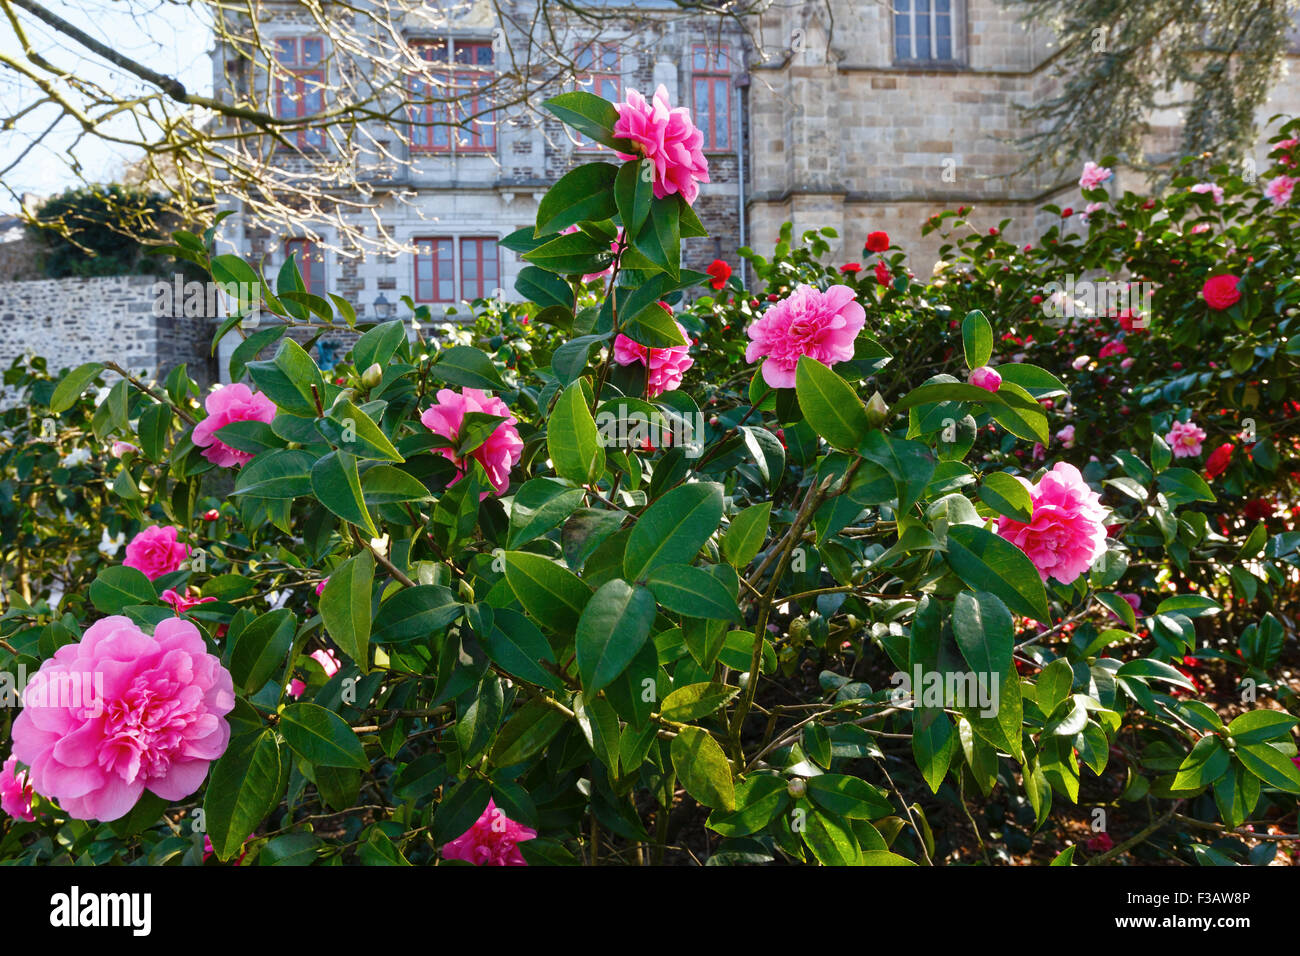 Blossoming camellia bush pink flowers stock photos blossoming blossoming camellia bush with pink flowers and thick leaves in spring stock image mightylinksfo